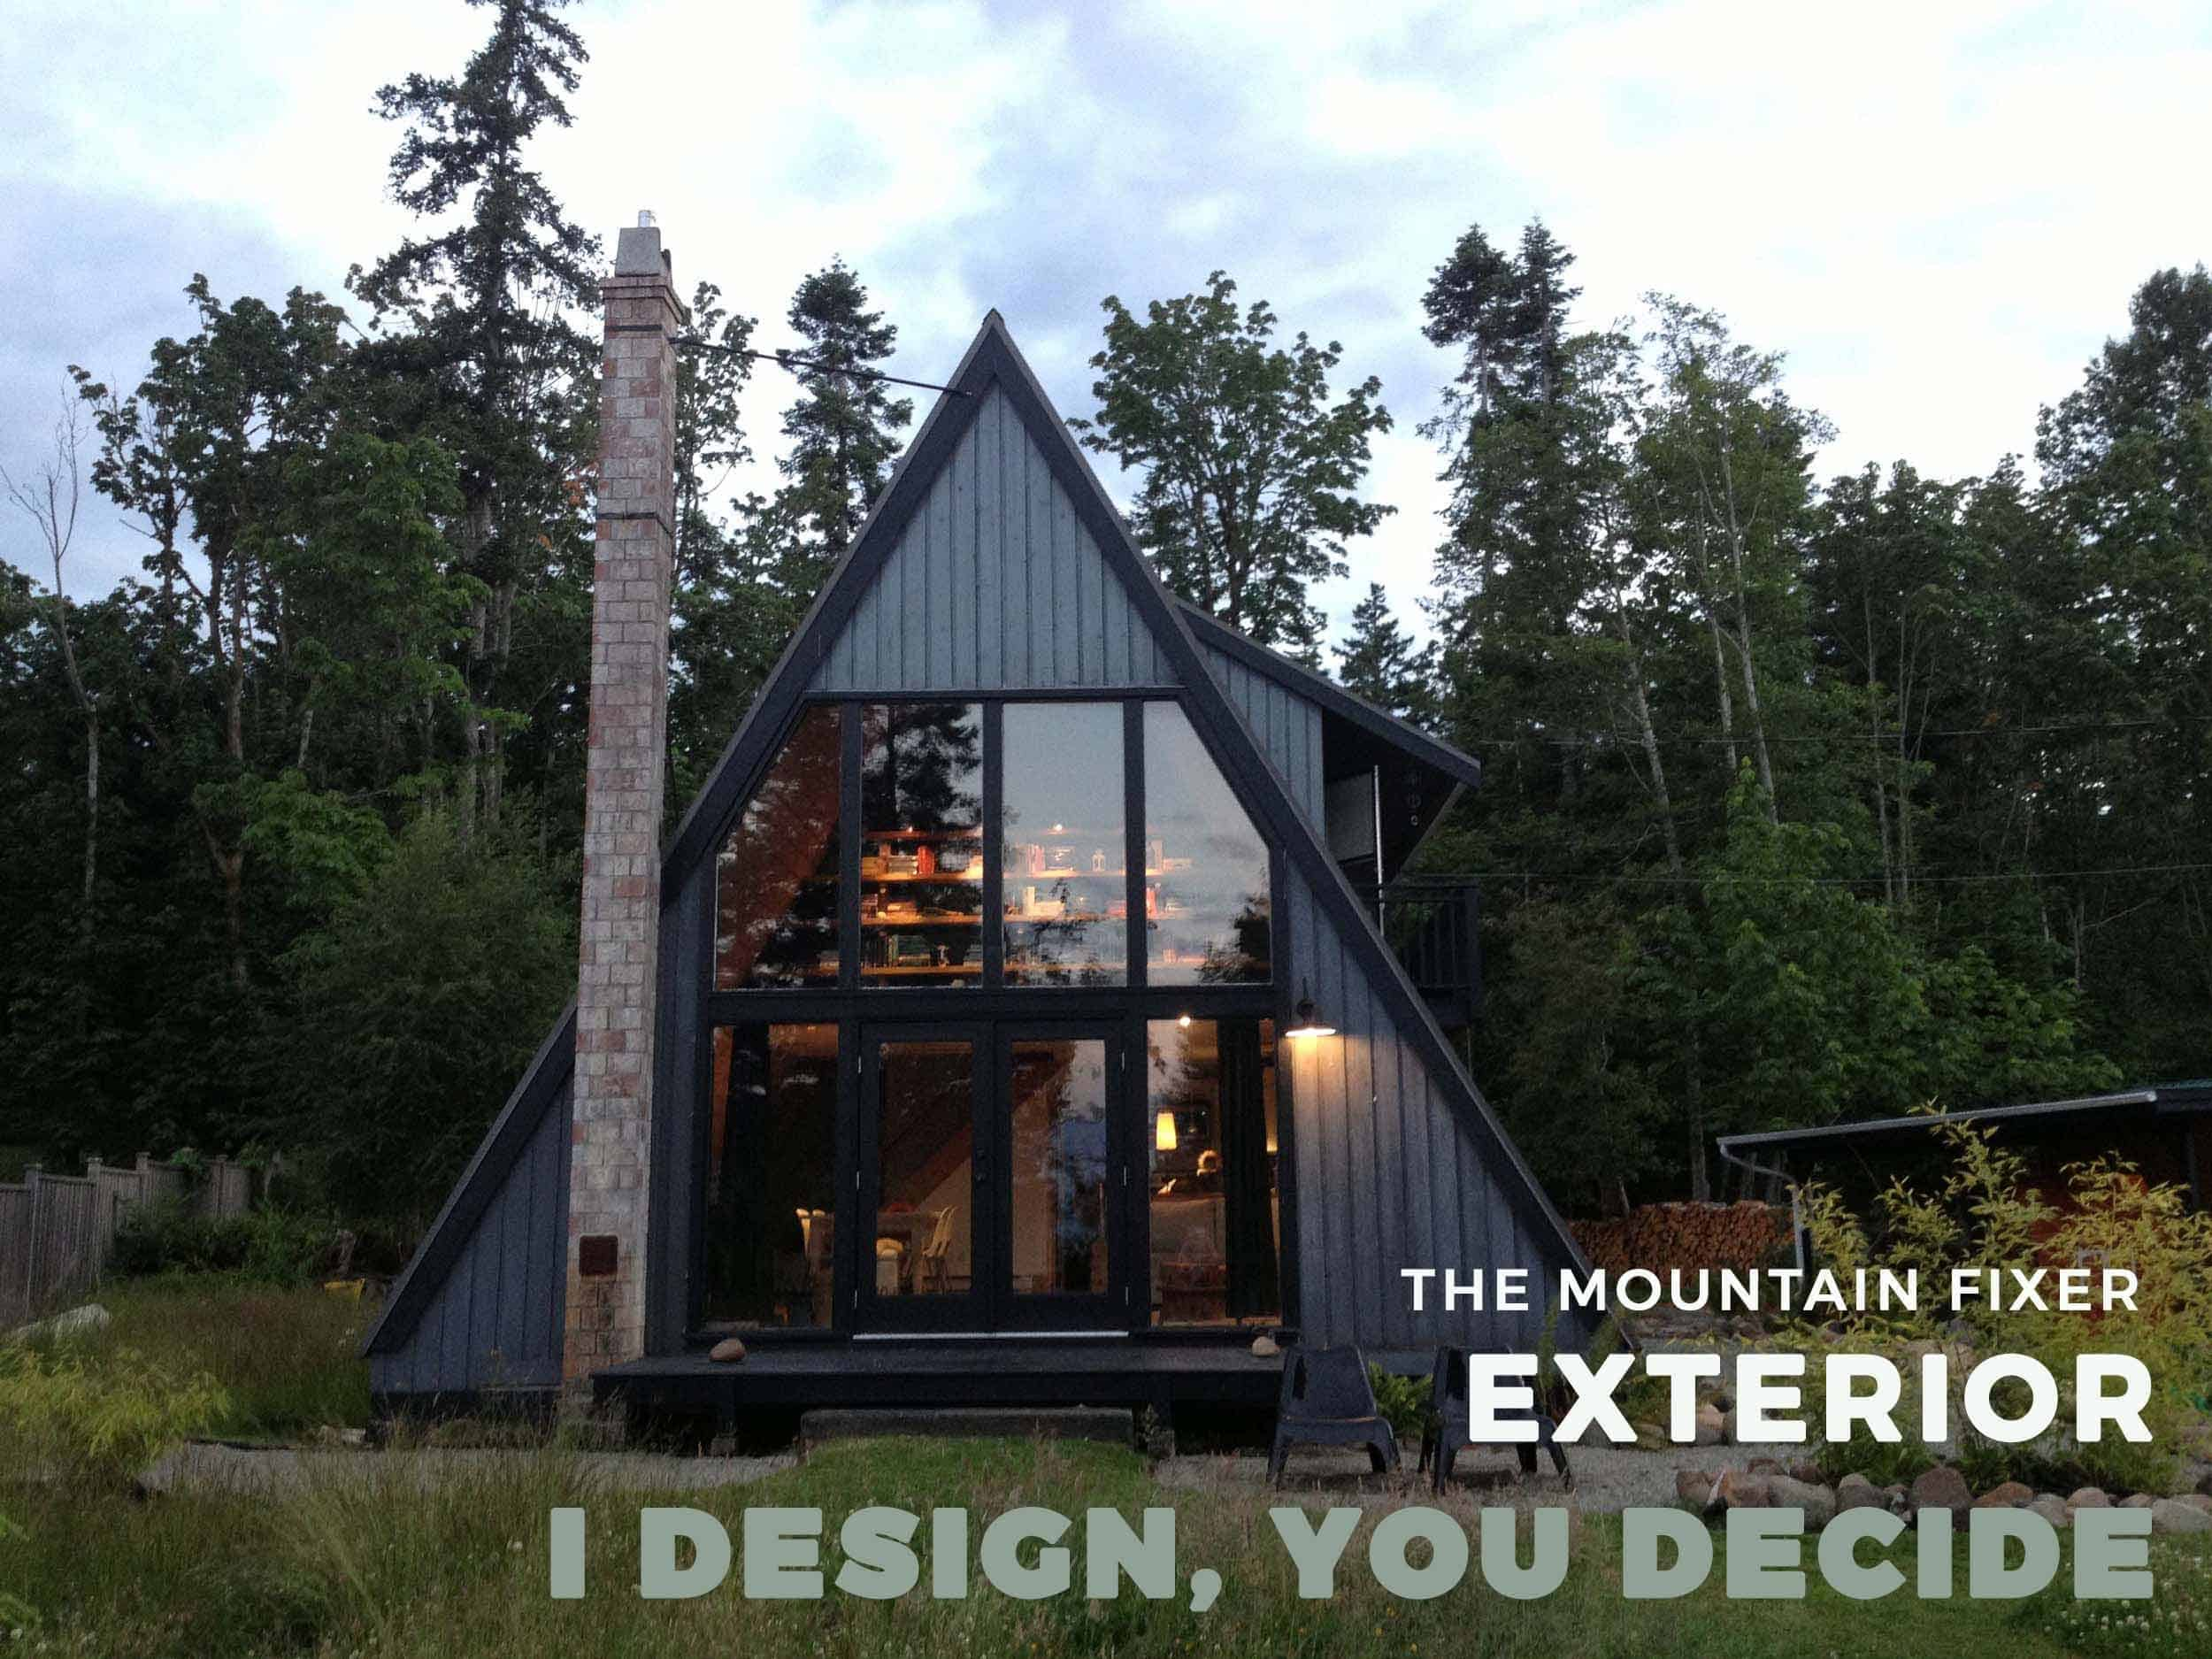 Opener Emily Henderson Mountain Fixer Upper Exterior I Design You Decide For Blog Inspiration Images12 Copy